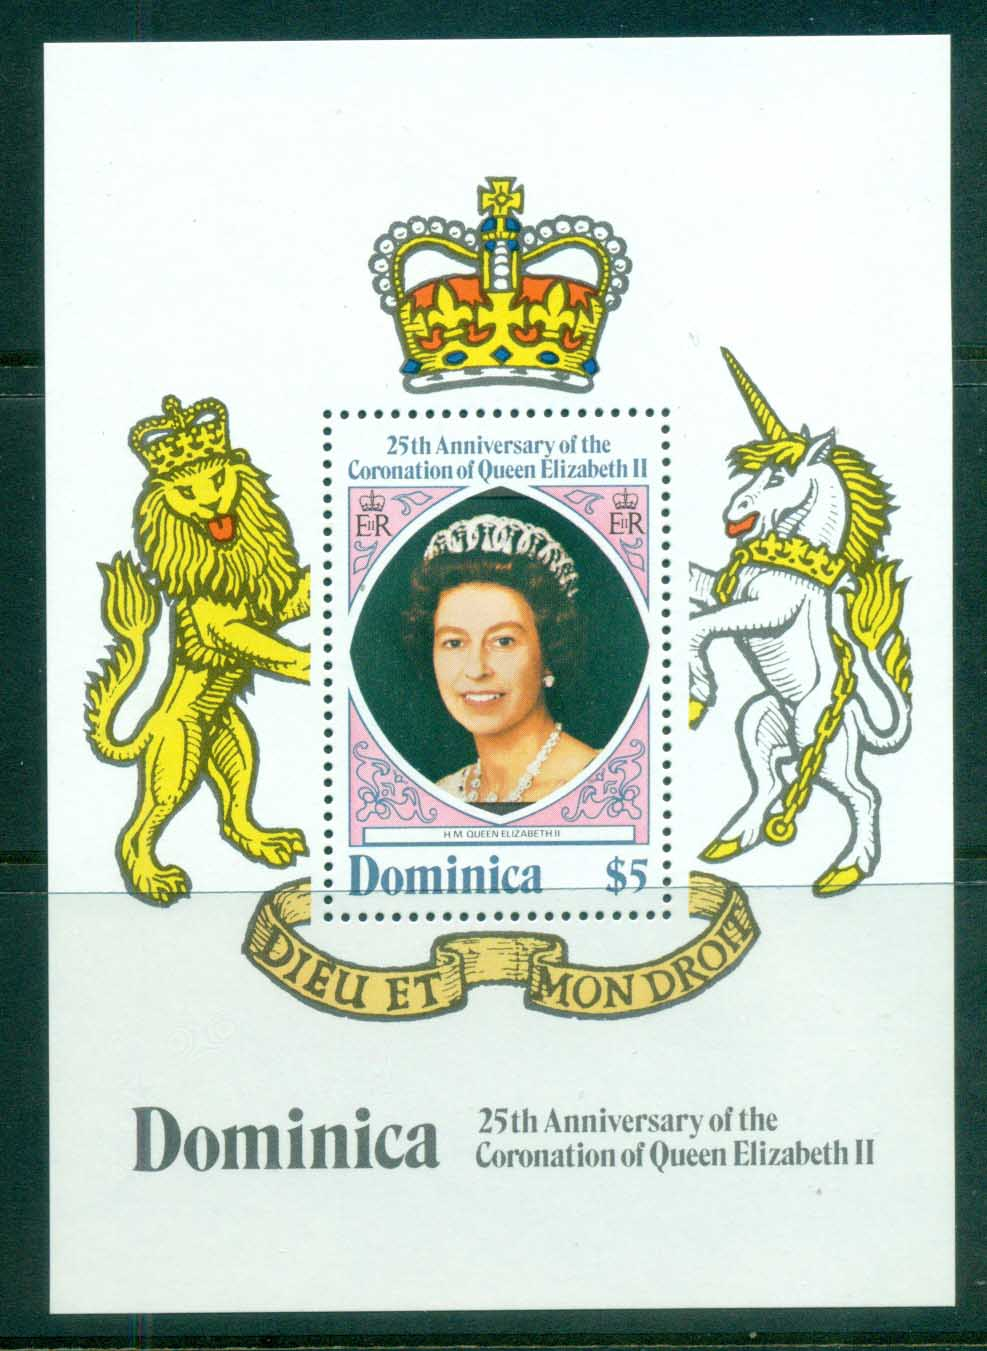 Dominica 1978 QEII Coronation, 25th Anniversary , Royalty MS MUH